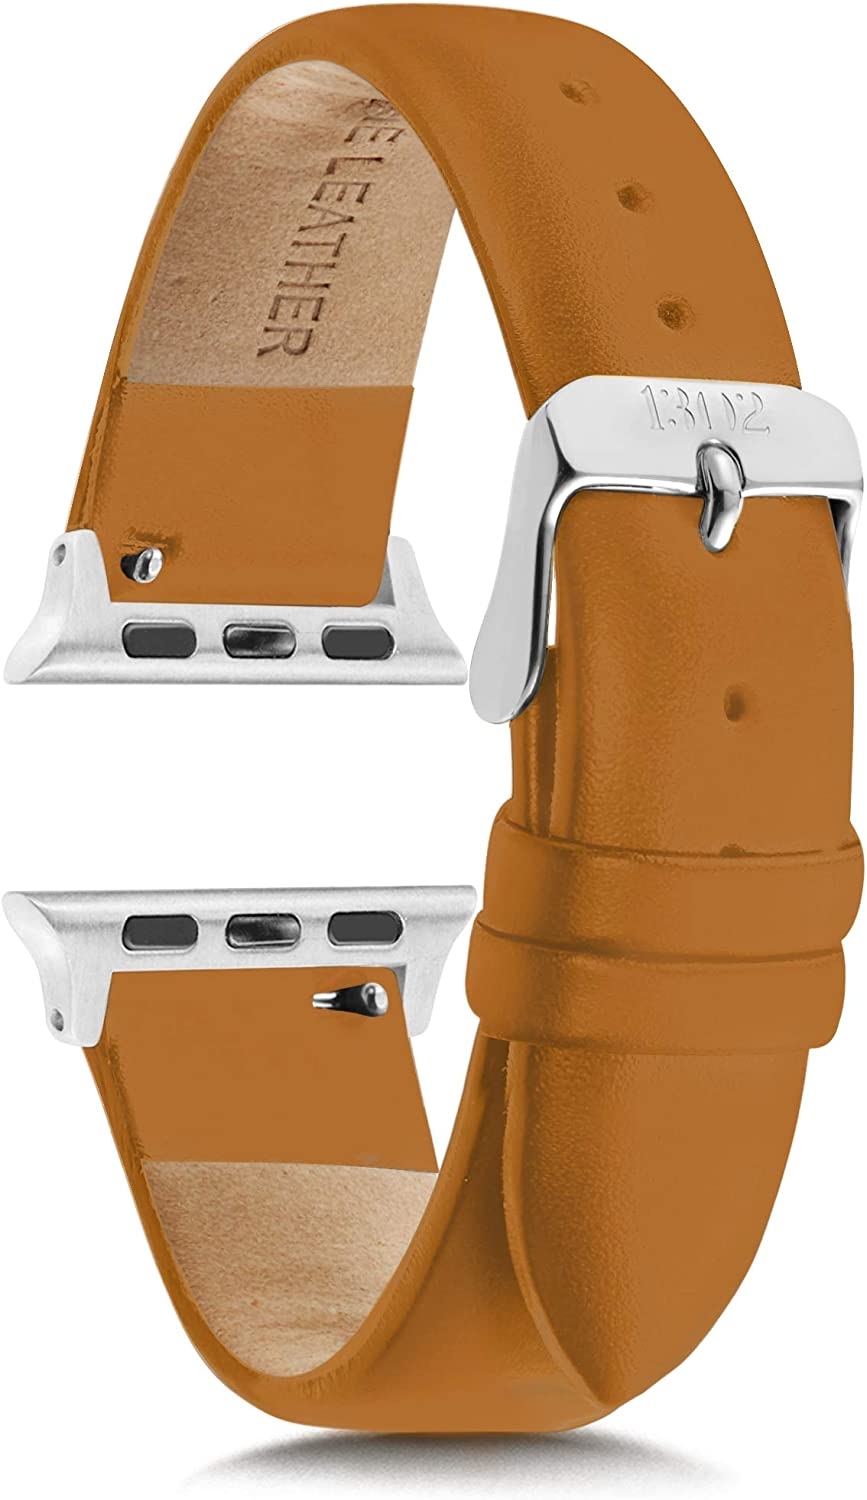 Compatible with Apple Watch Bands 38mm Women - Apple Watch Bands Women - Apple Watch Band 40mm Series 4 - Apple Watch Band Leather, Leather Apple Watch Band, Silver Apple Watch Band, Tan